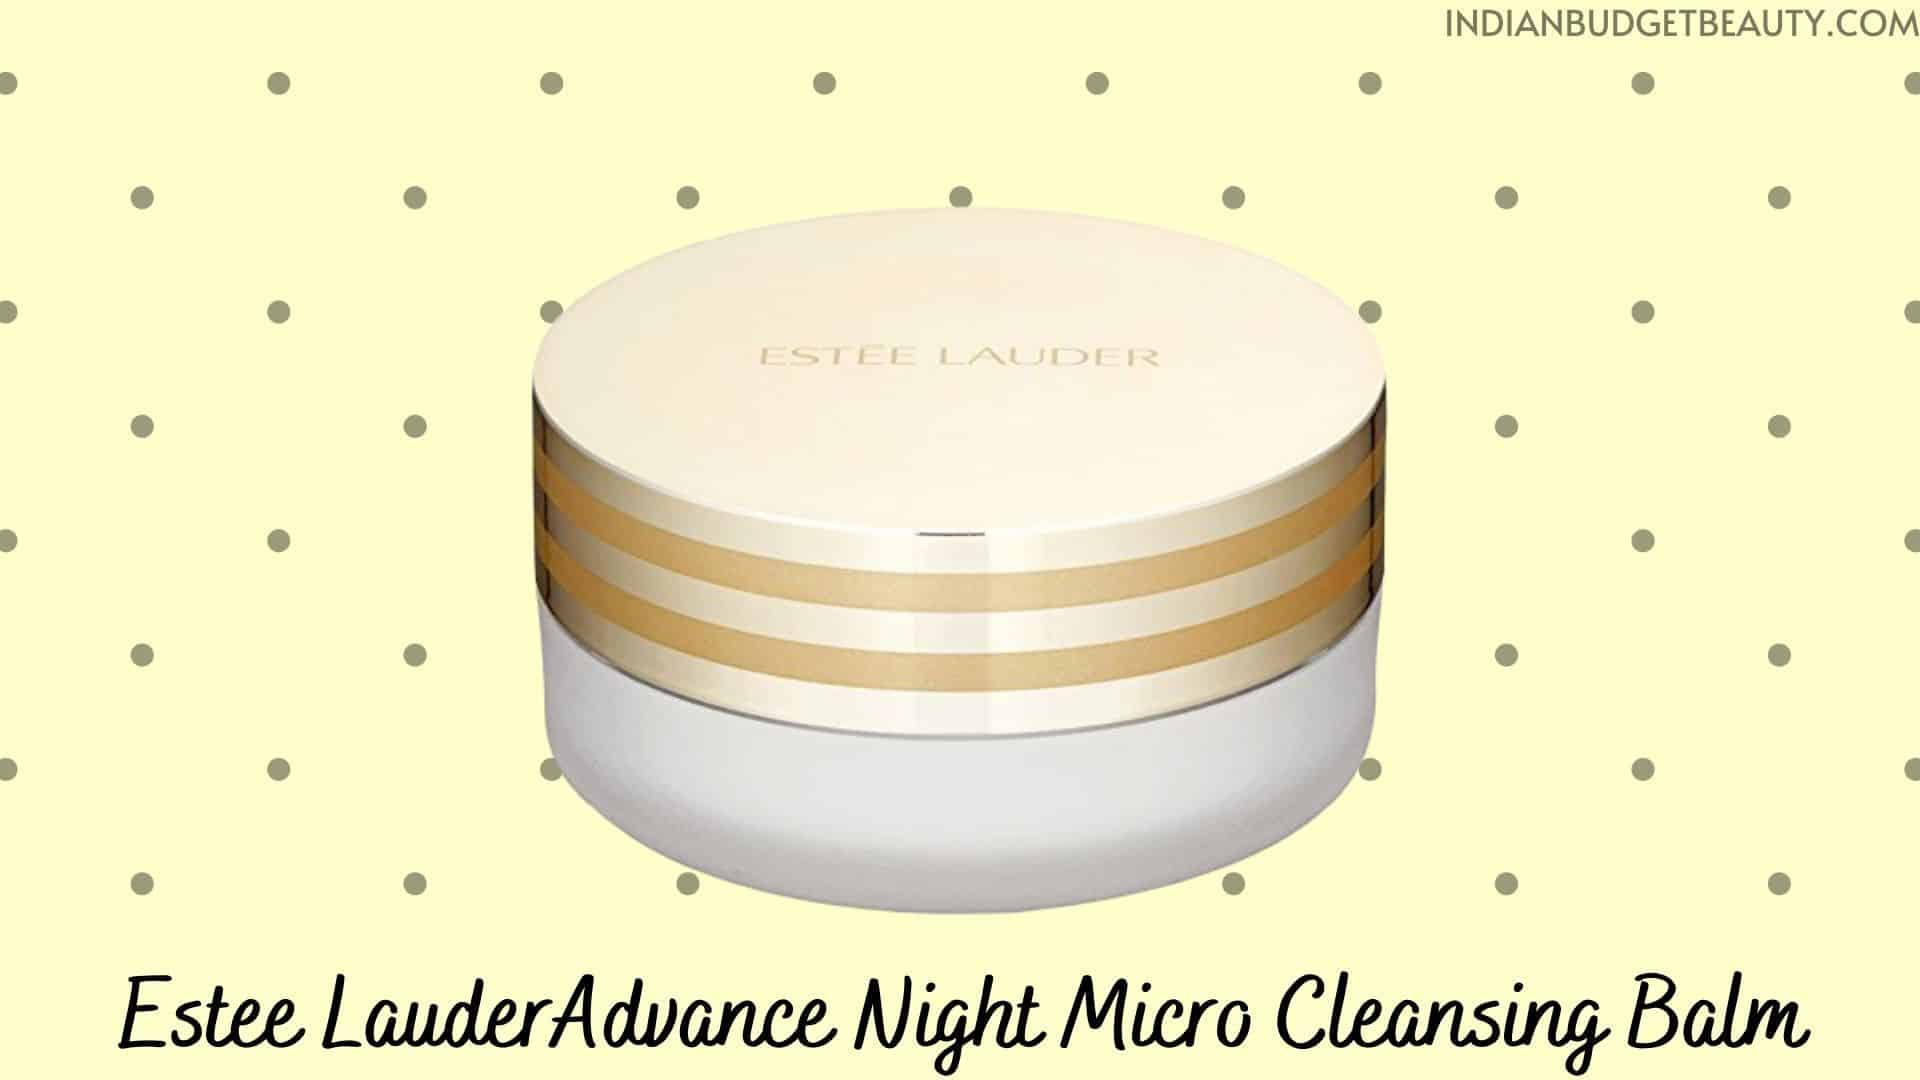 Estee Lauder Advanced Night Micro Cleansing Balm | best cleansing balm in india